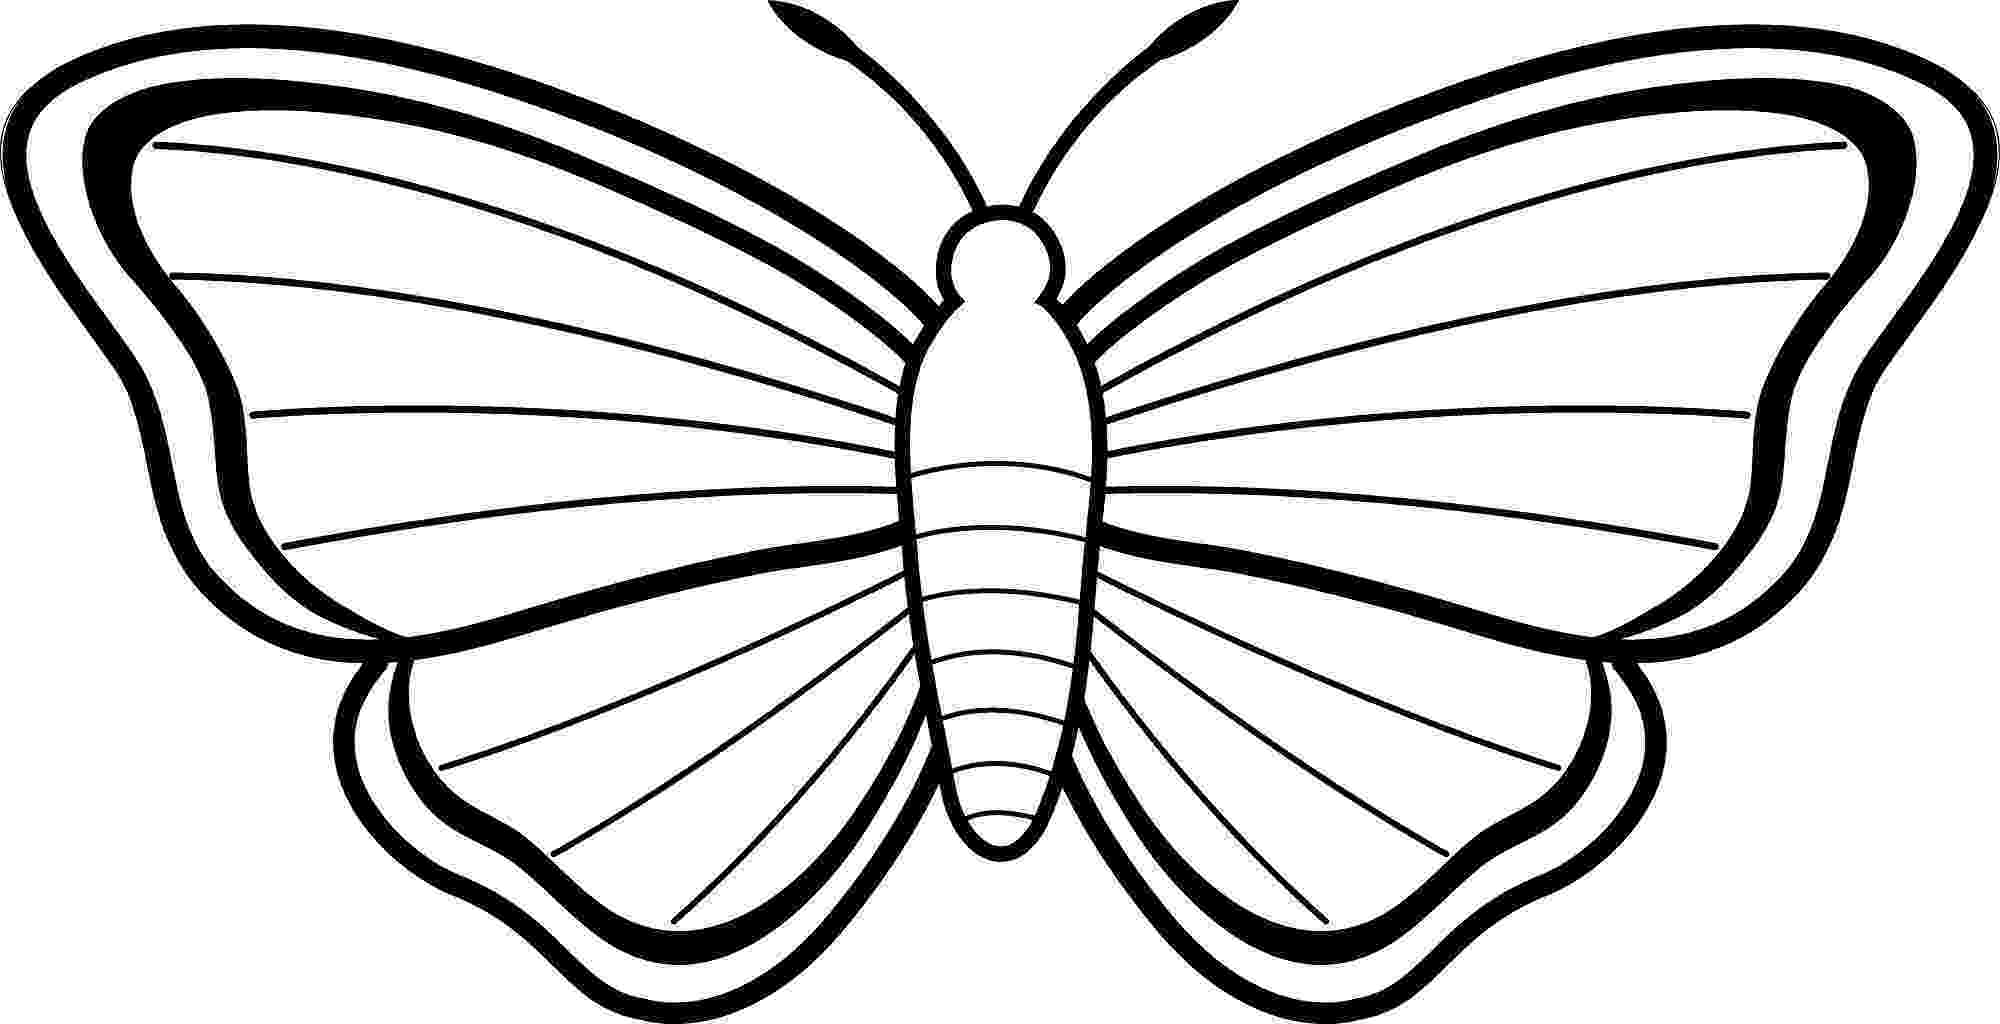 butterfly coloring pages free printable free printable butterfly coloring pages for kids printable pages butterfly coloring free